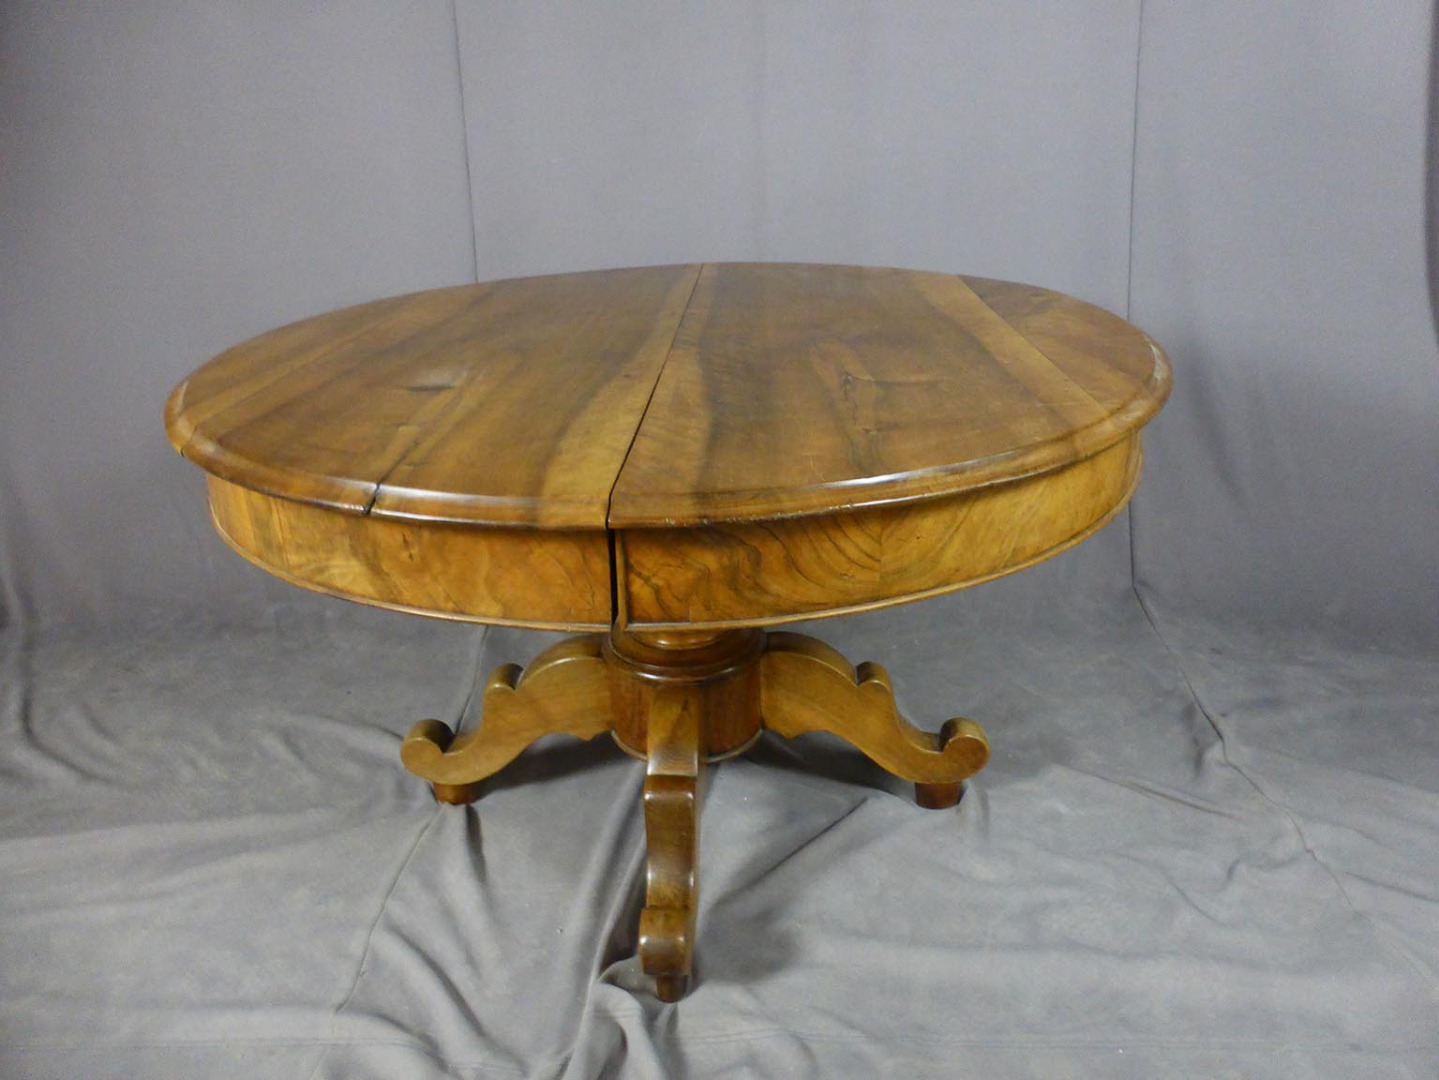 19th CENTURY EXTENDING TABLE